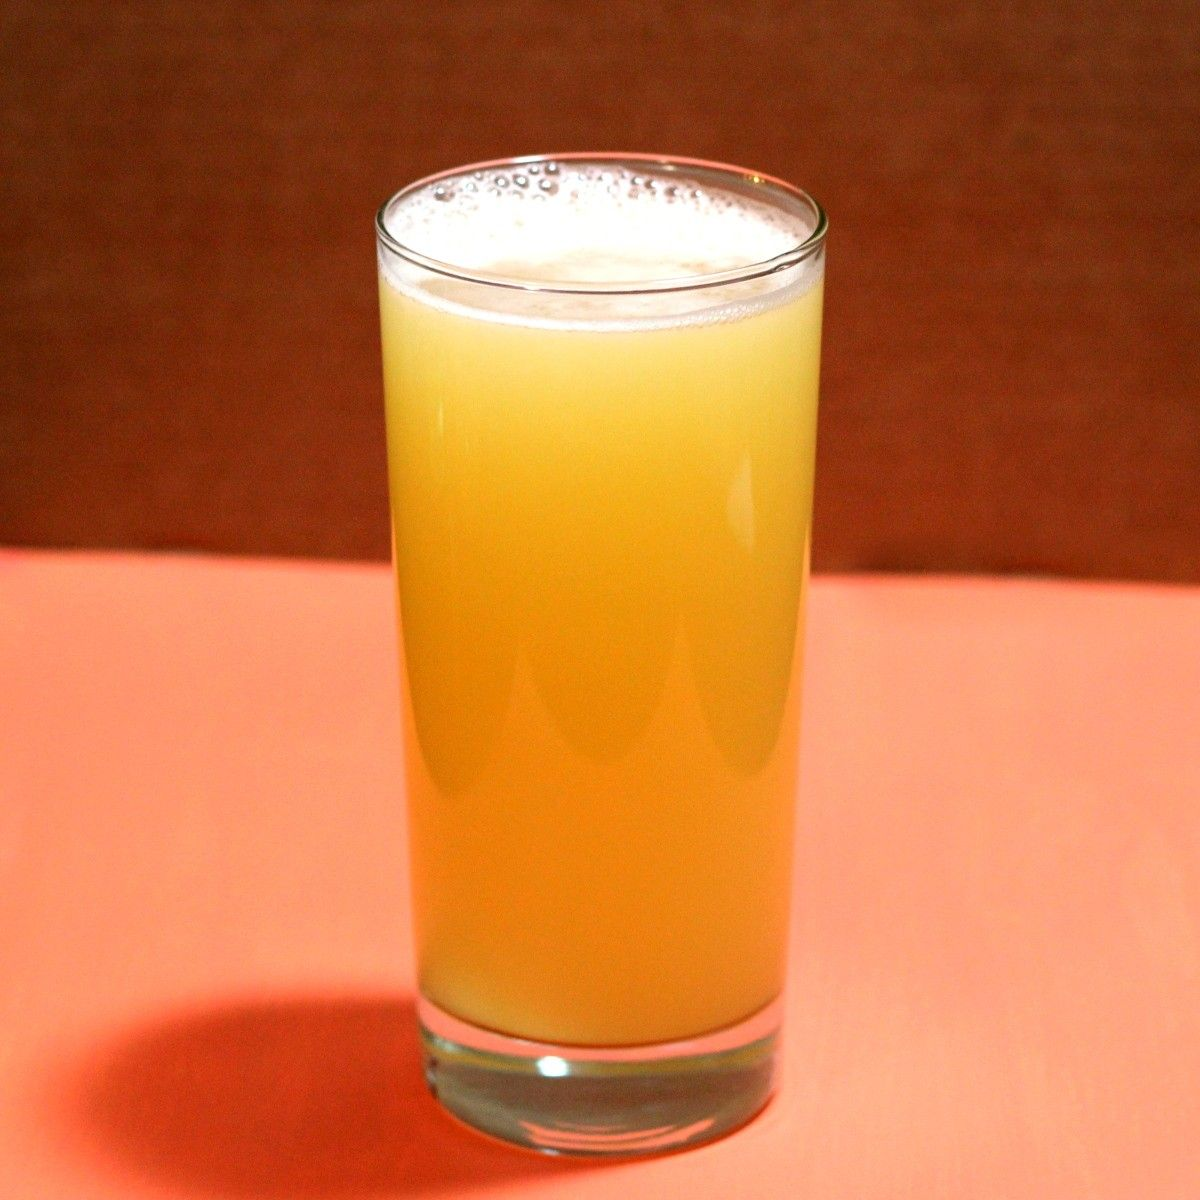 Fuzzy navel mix that drink for Good alcoholic mixed drinks